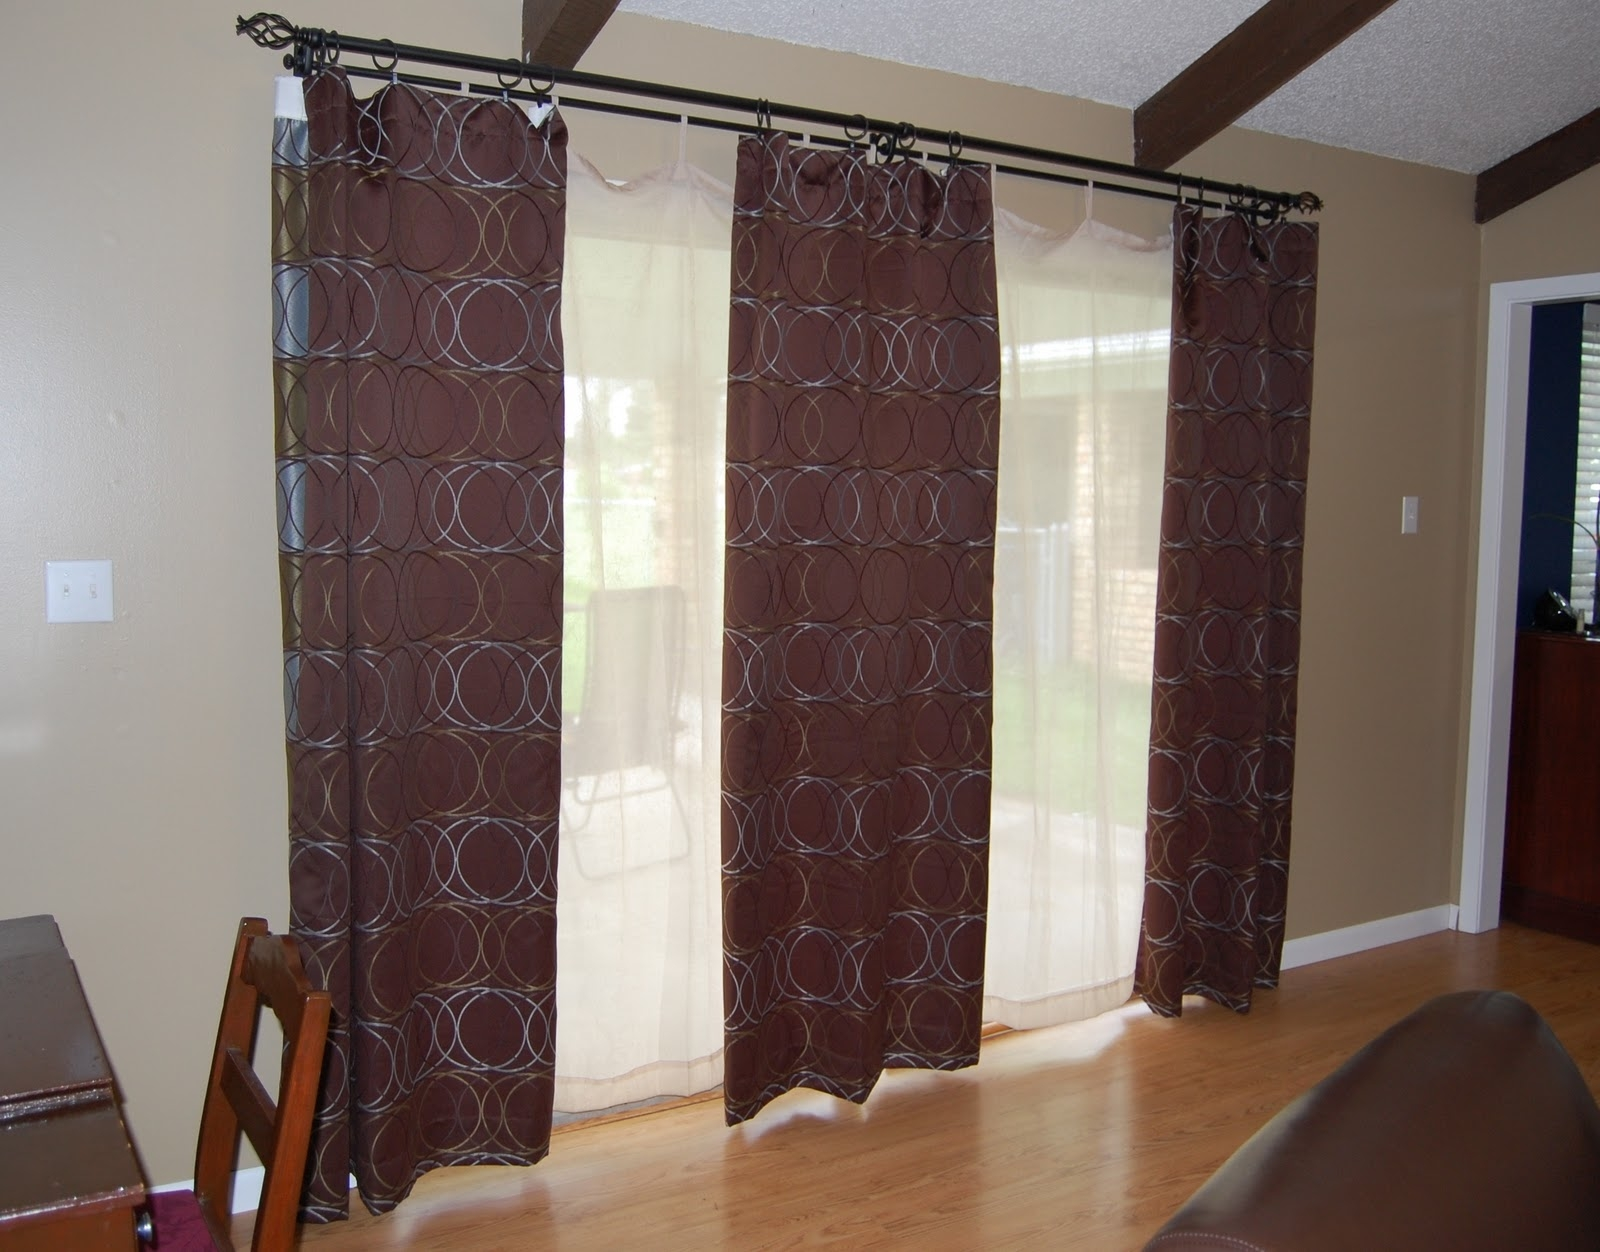 Curtains For Patio Doors Patio Door Blinds And Curtains Blinds Regarding Extra Long Door Curtain (Image 5 of 15)